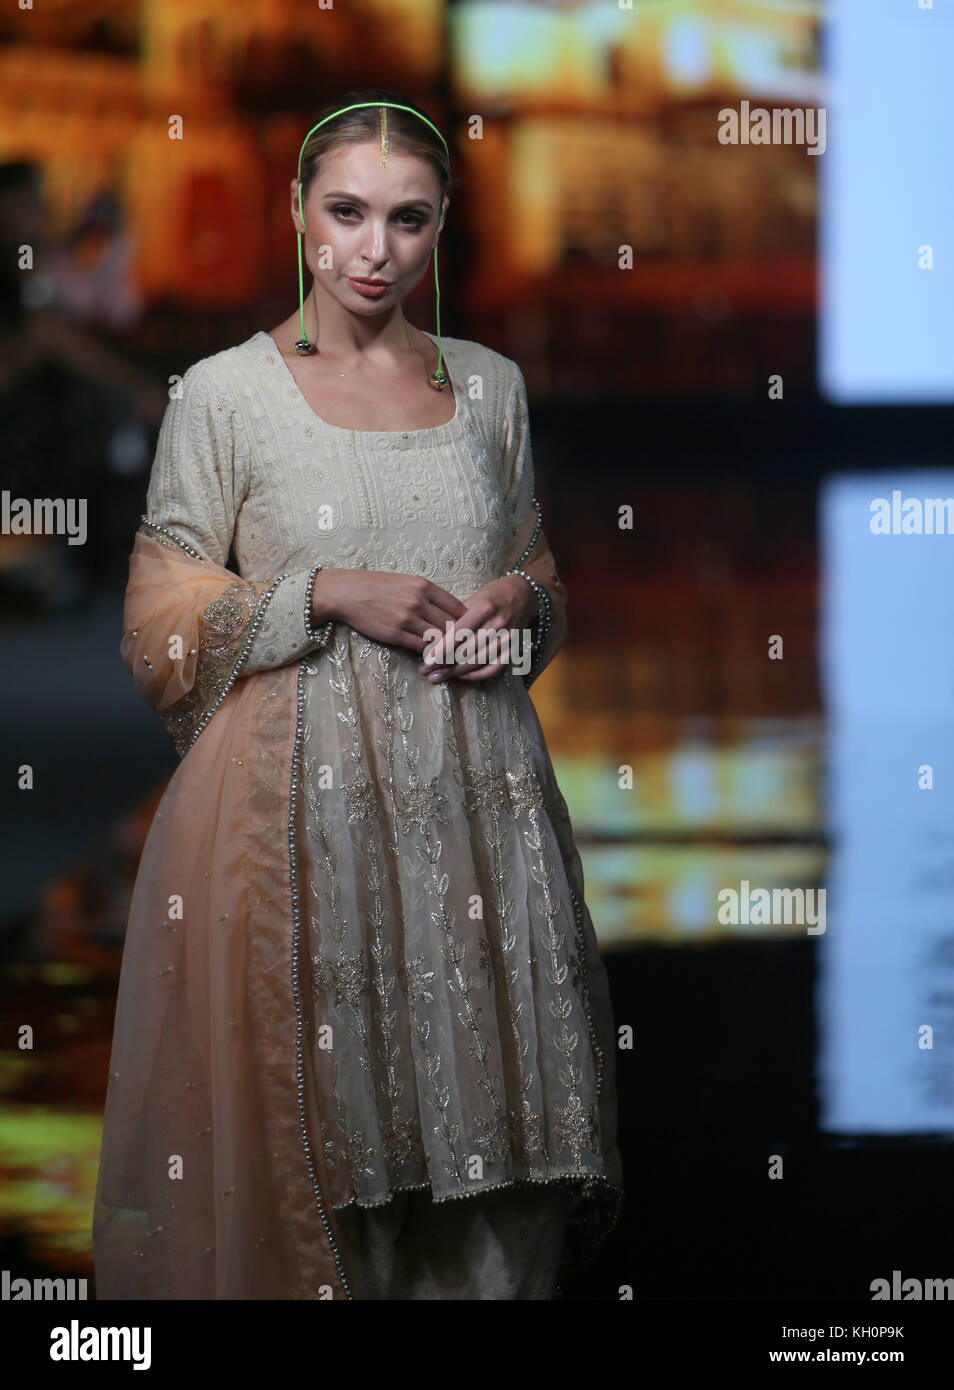 London, UK. 11th Nov, 2017. India Fashion Week, with designers from India and London showcasing and showing their Stock Photo